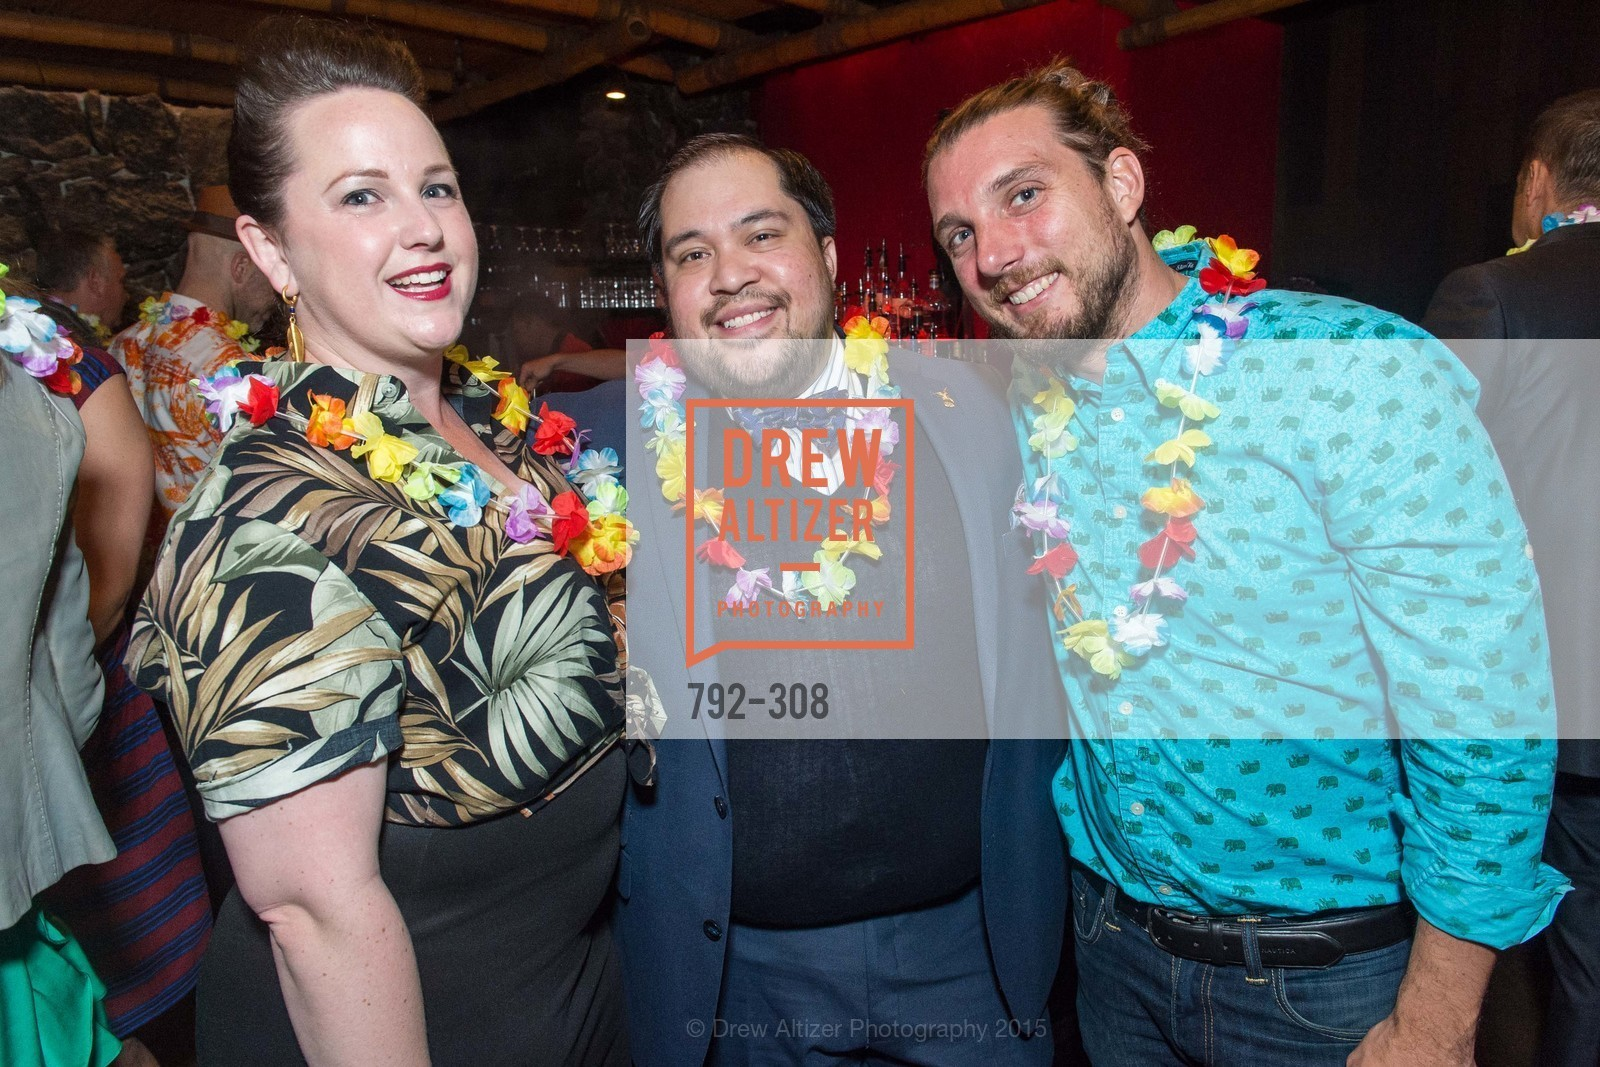 Genevieve Porter, Tonga Room & Hurricane Bar Celebrates 70 Years of Tiki Glory, Fairmont, September 23rd, 2015,Drew Altizer, Drew Altizer Photography, full-service event agency, private events, San Francisco photographer, photographer California